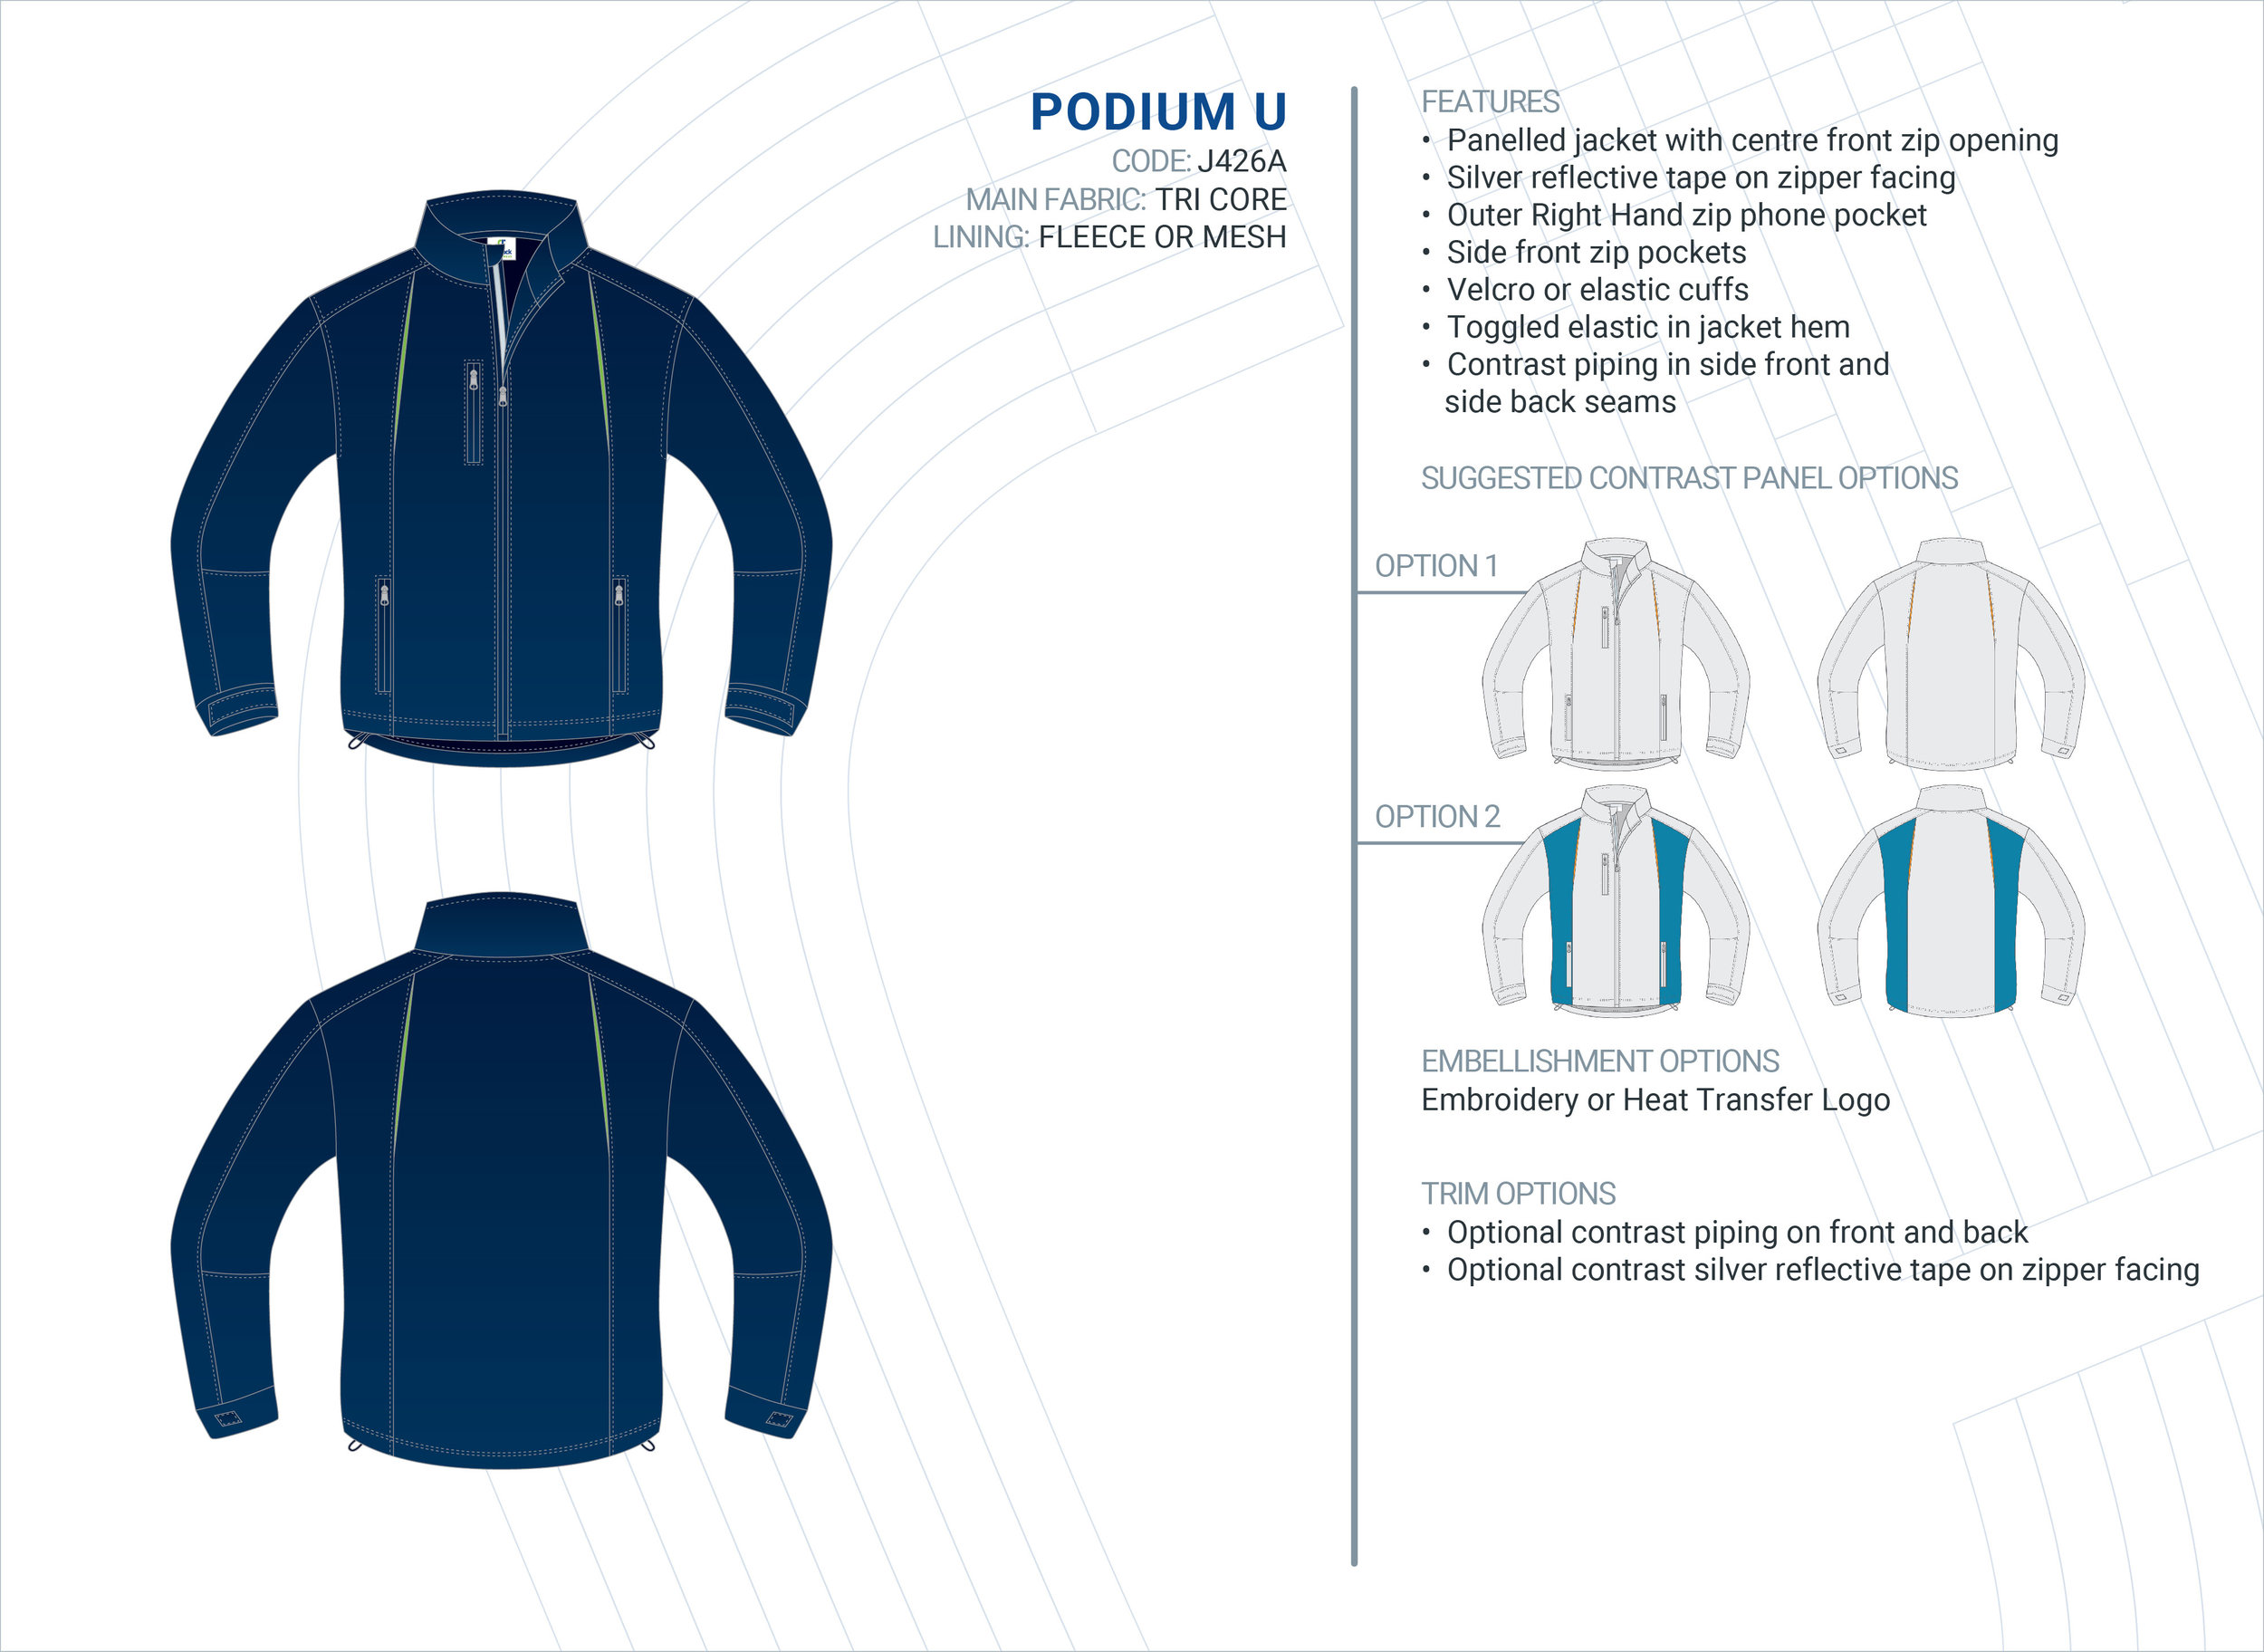 Unisex  Podium  Tri-Core Jacket